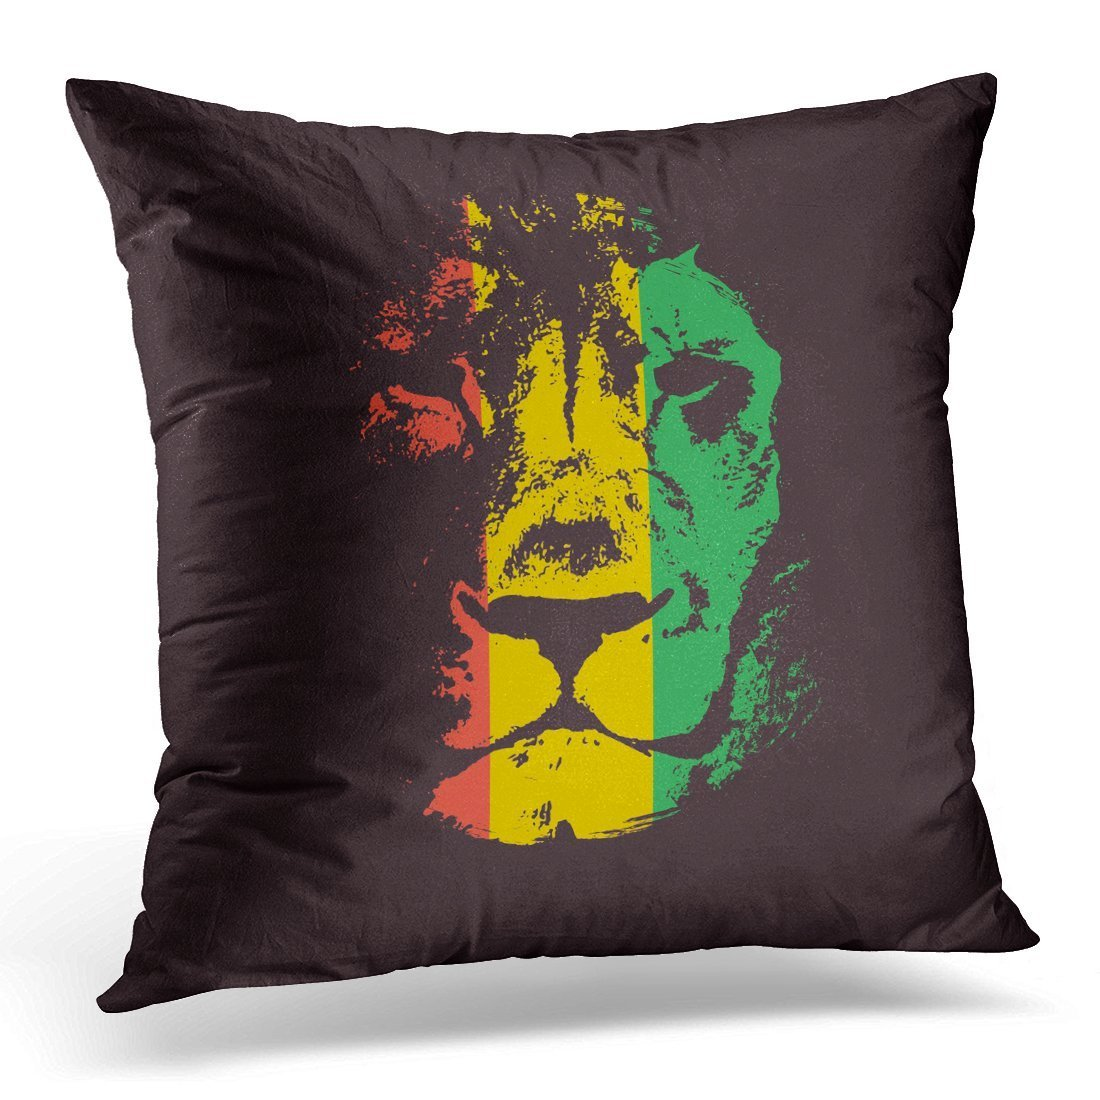 Amazon Com Spxubz Black Reggae Rasta Green Lion Jamaica Decorative